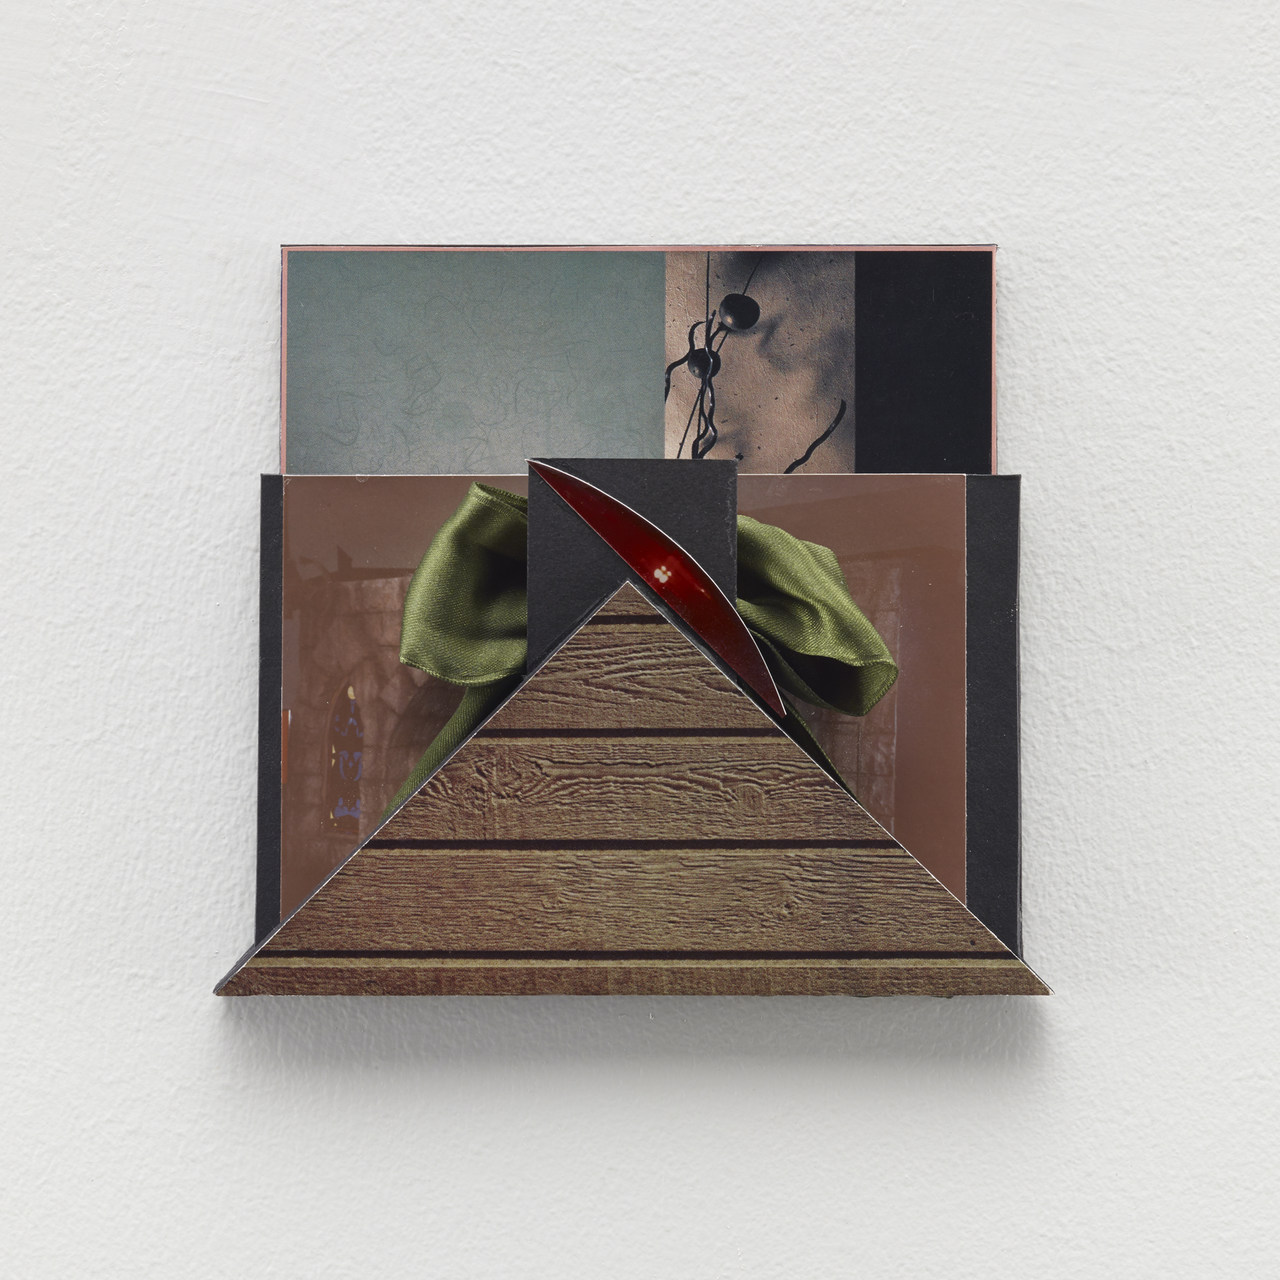 12.Fecteau_Untitled, 2014_Mixed media collage_5.75 x 6.25 x 1.5 inches